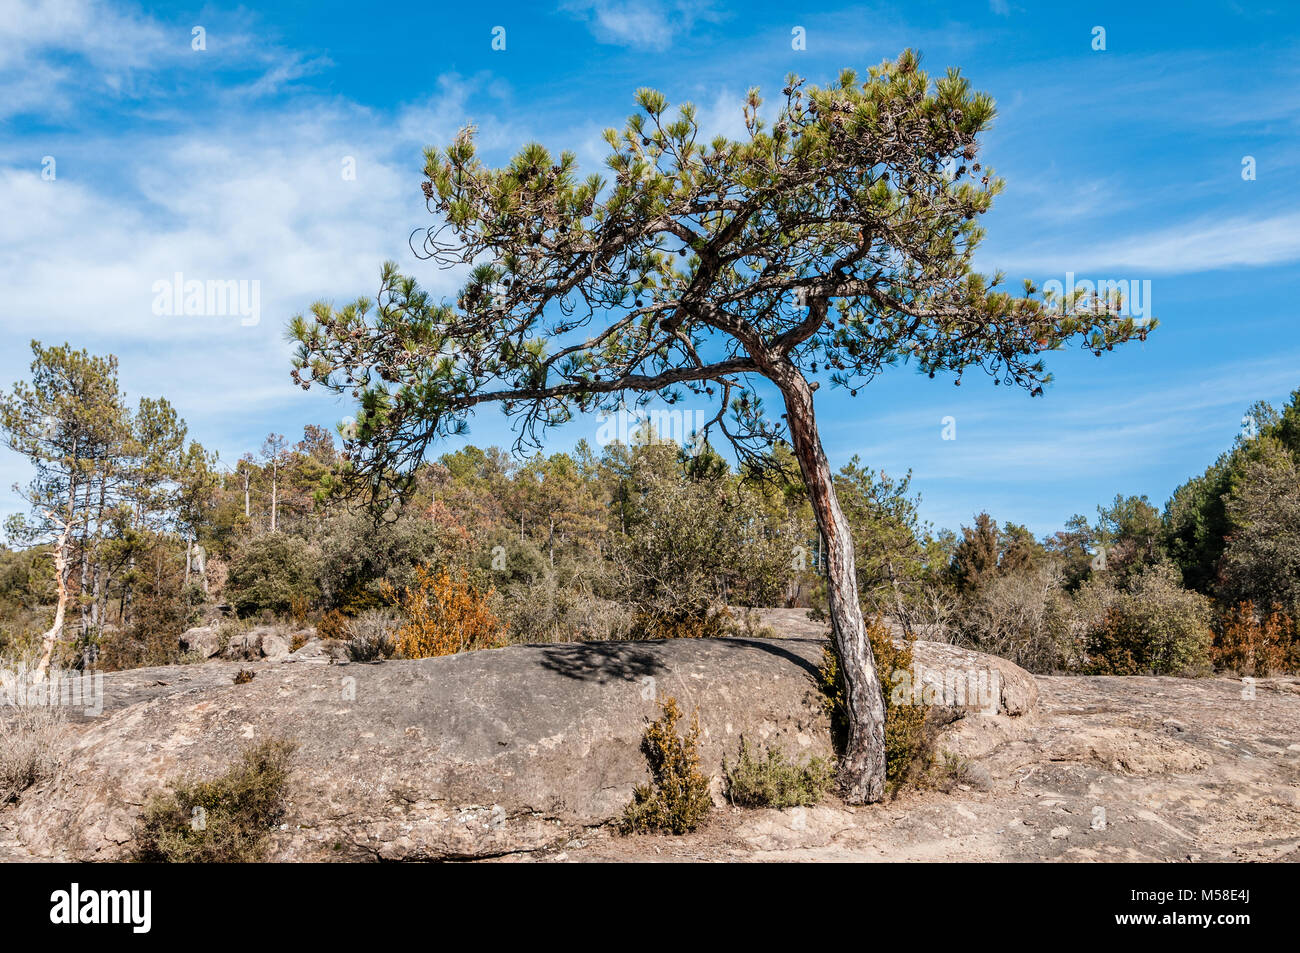 pine on a rocky terrain, Pinus halepensis, Catalonia, Spain - Stock Image